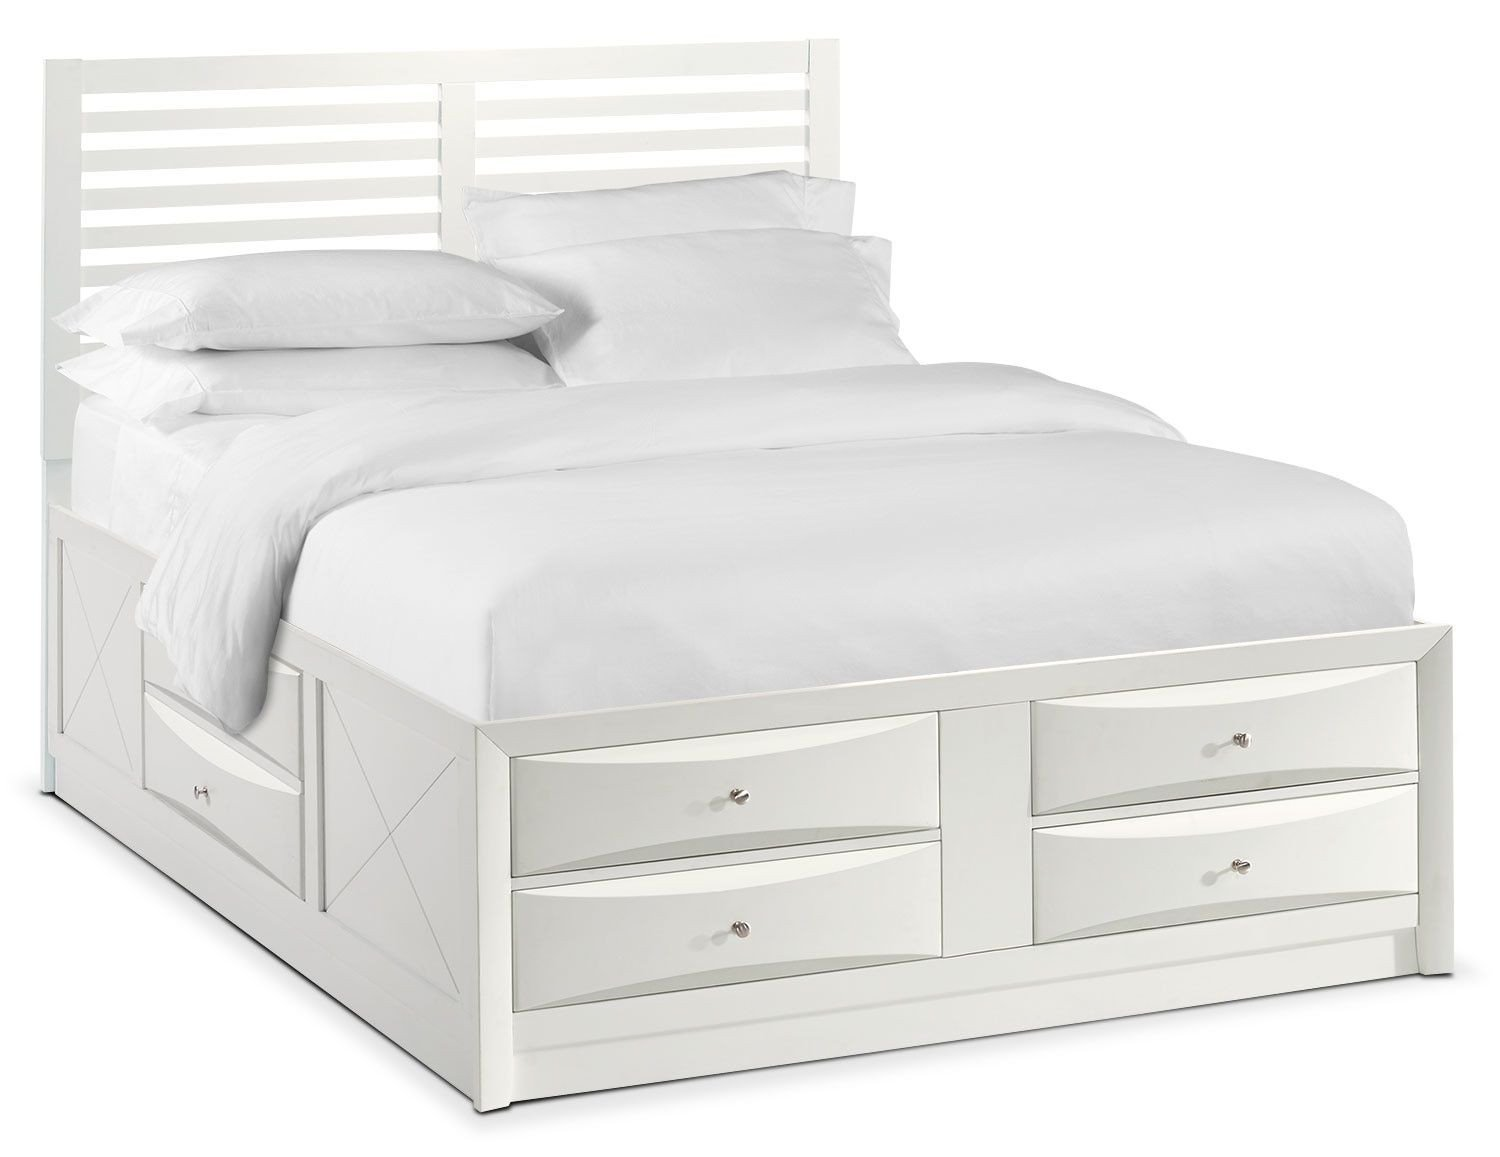 Value City Bedroom Set On Sale Inspirational Braden King Slat Bed with Storage White